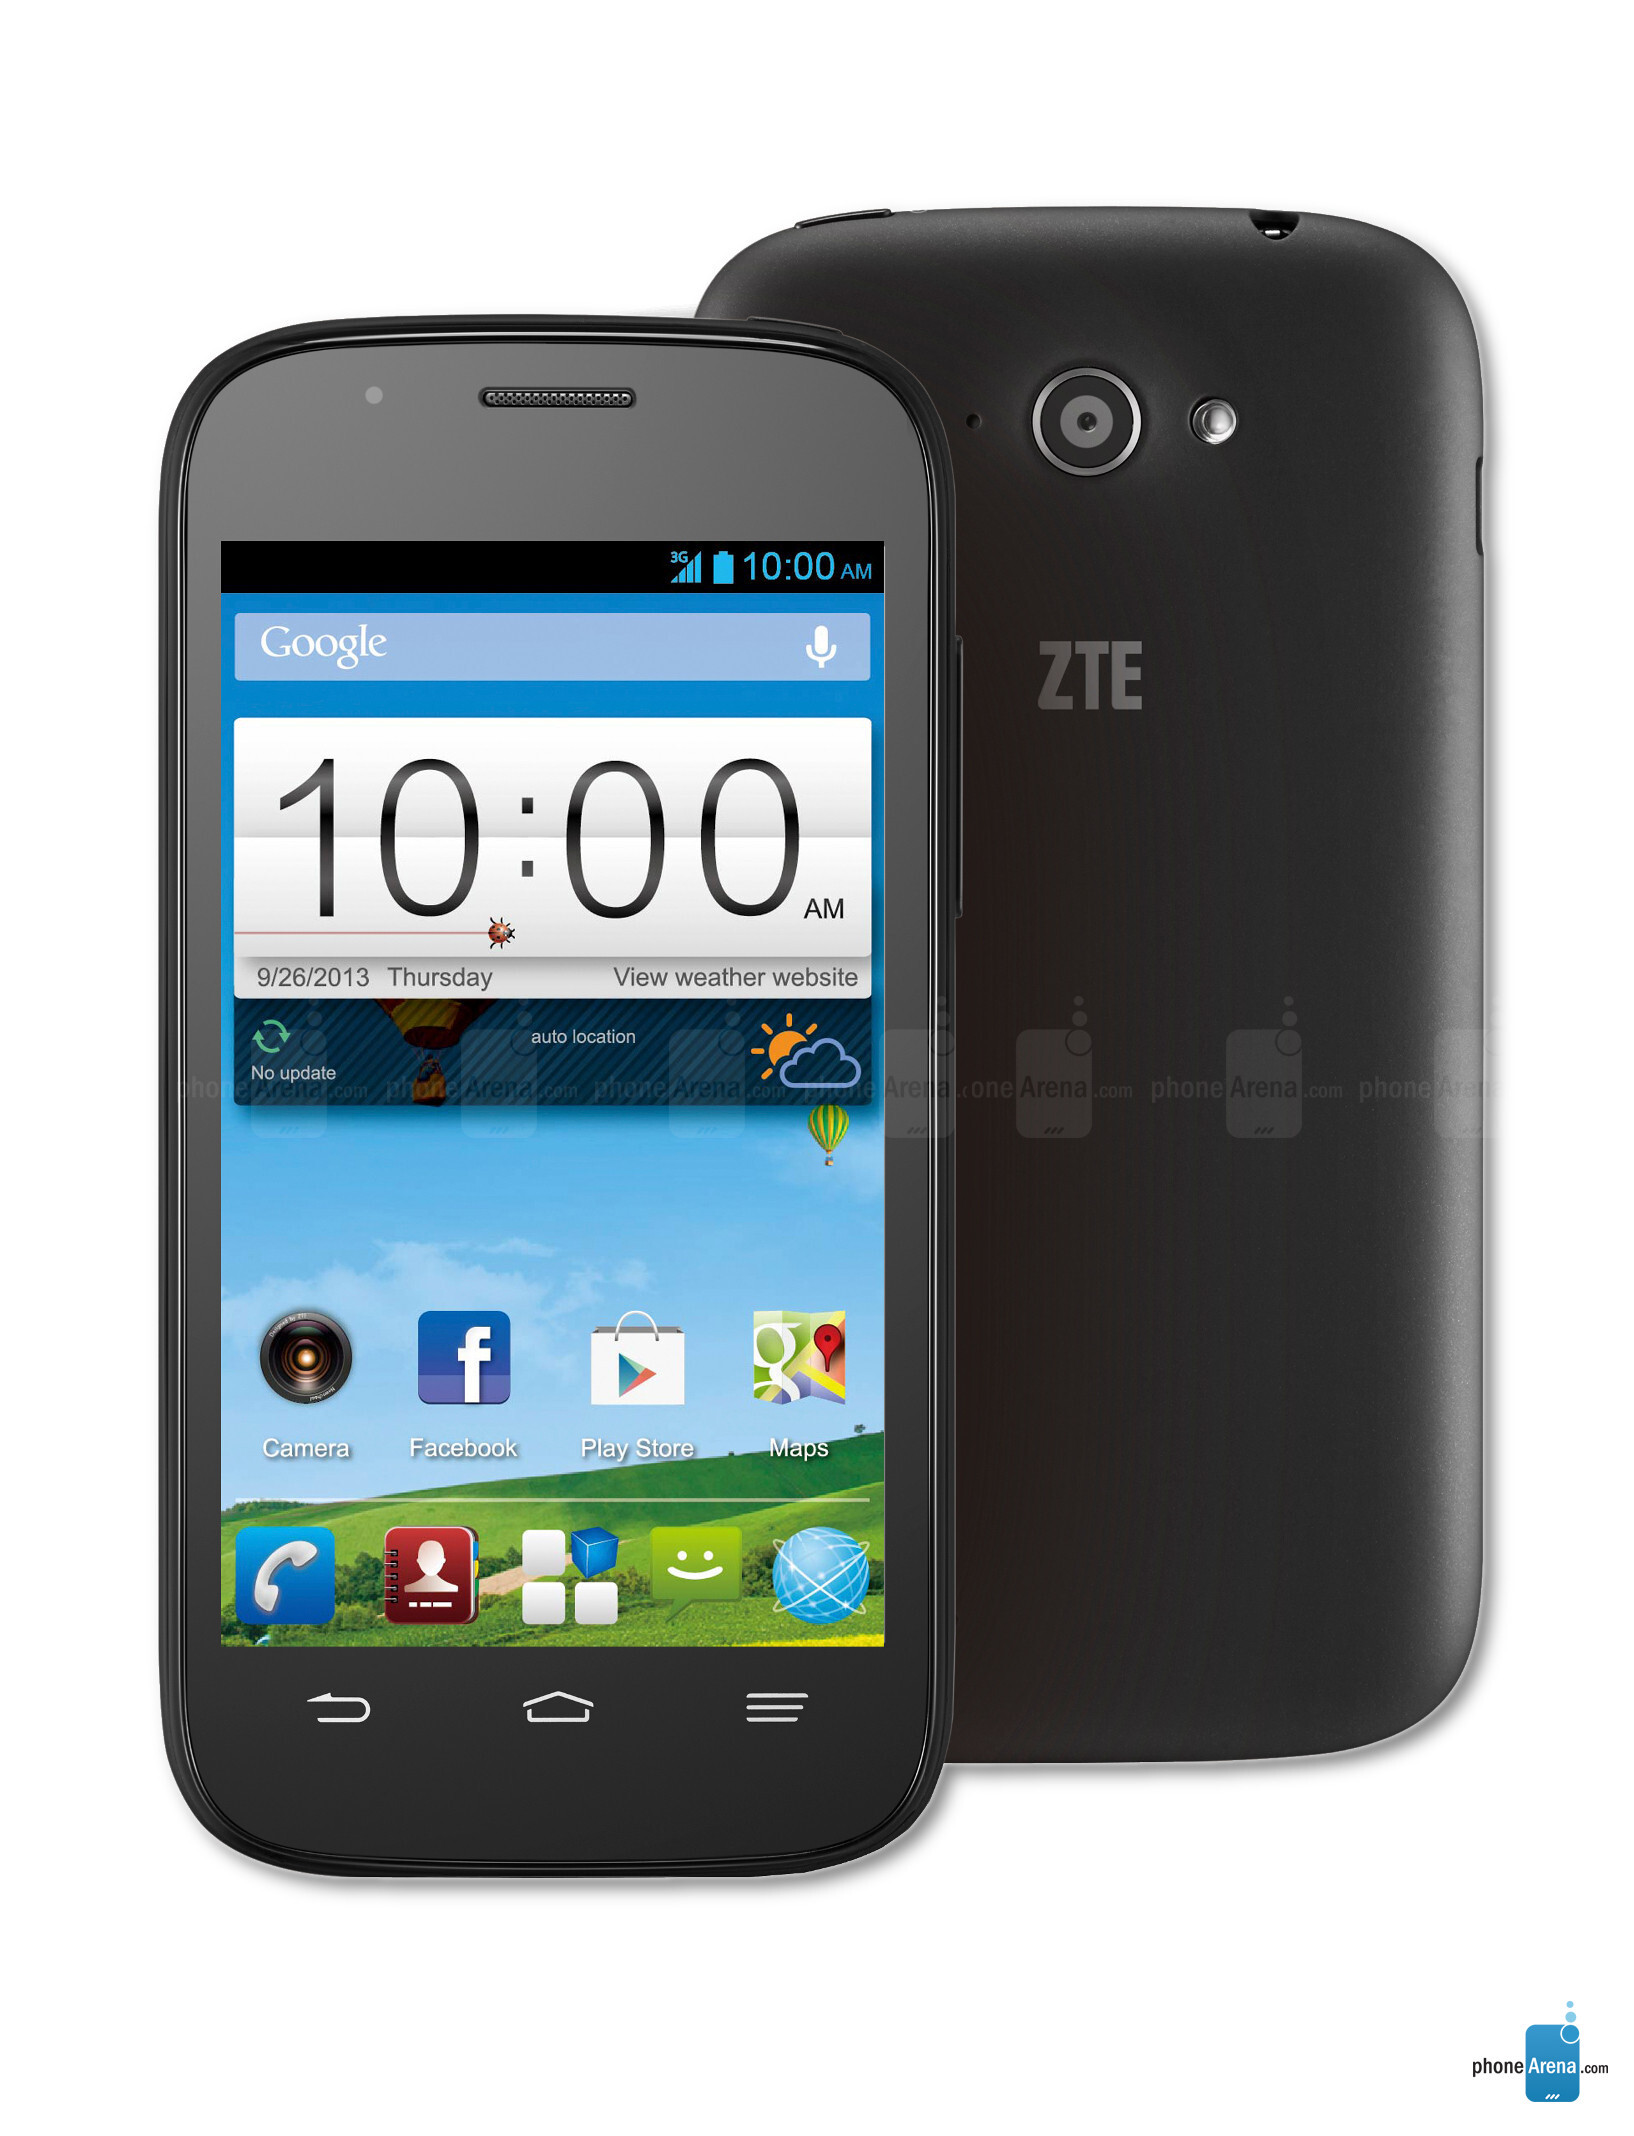 the meantime zte n817 phone specs year, IFA